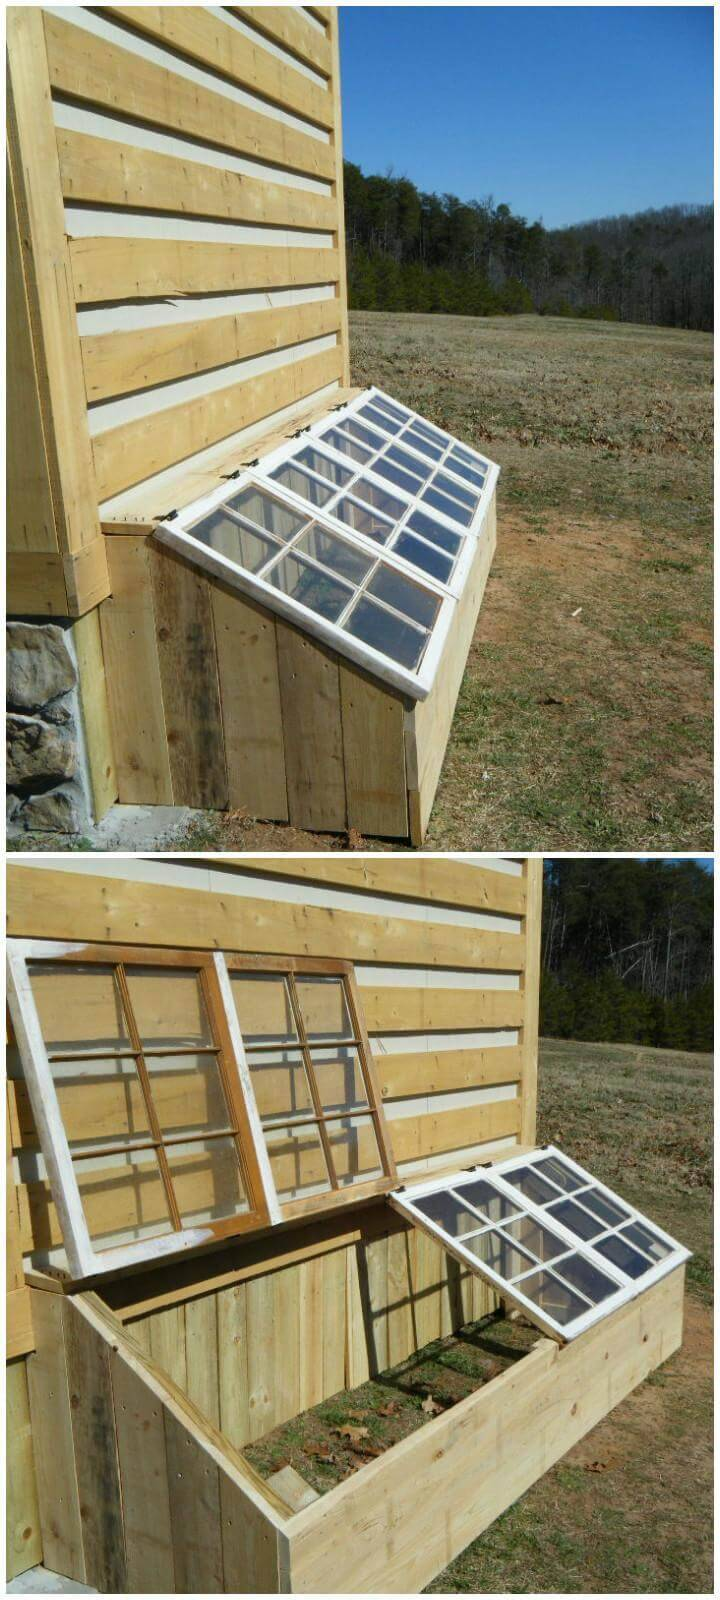 80+ DIY Greenhouse Ideas with Step-by-Step Tutorials - DIY & Crafts